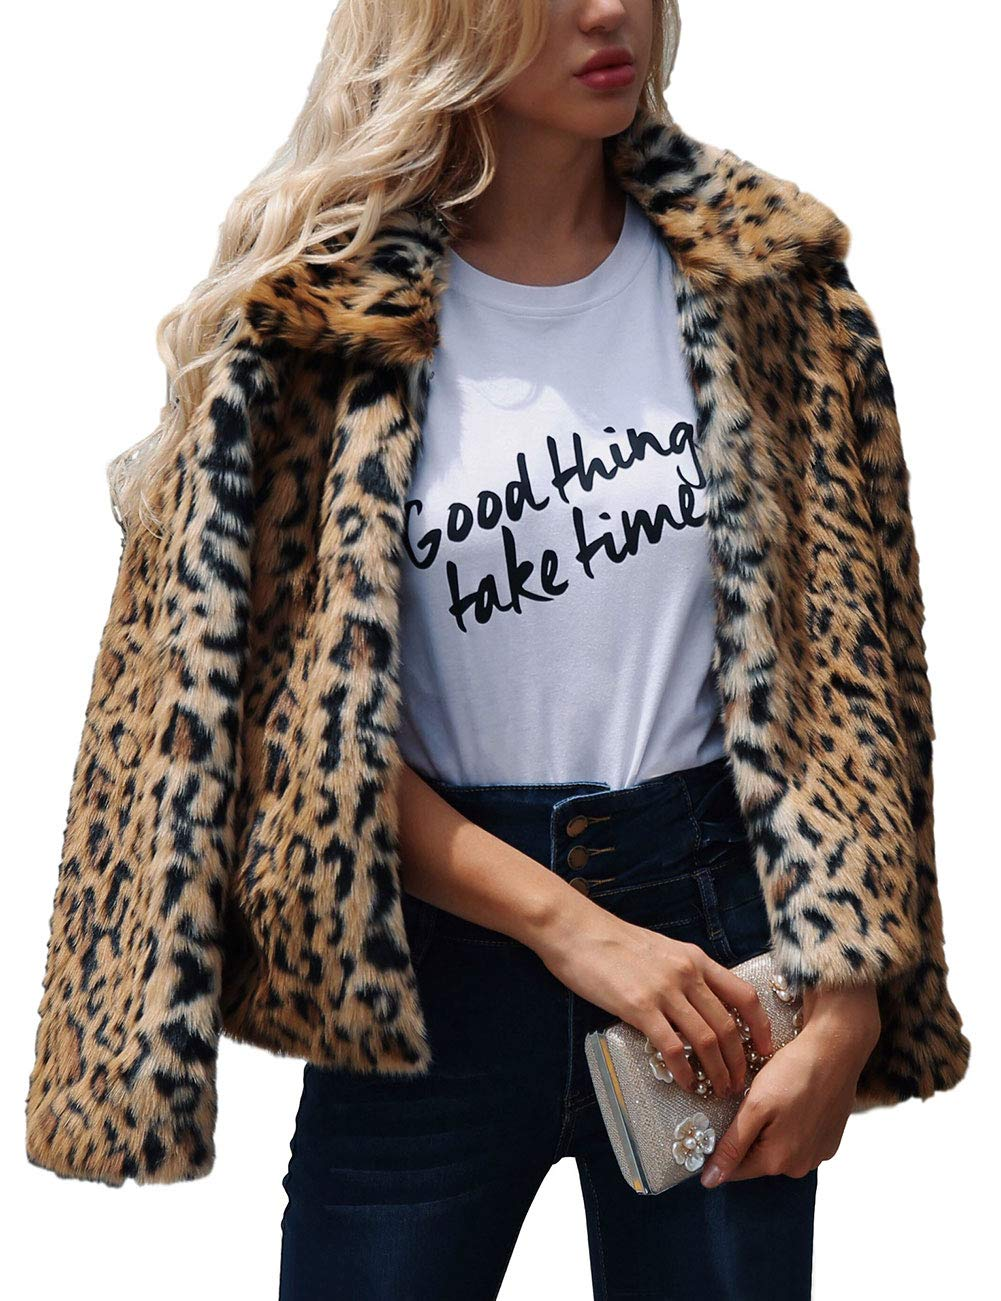 ZLSLZ Womens Ladies Cute Leopard Lapel Faux Fur Long Sleeve Event Waistcoat Jacket US XS